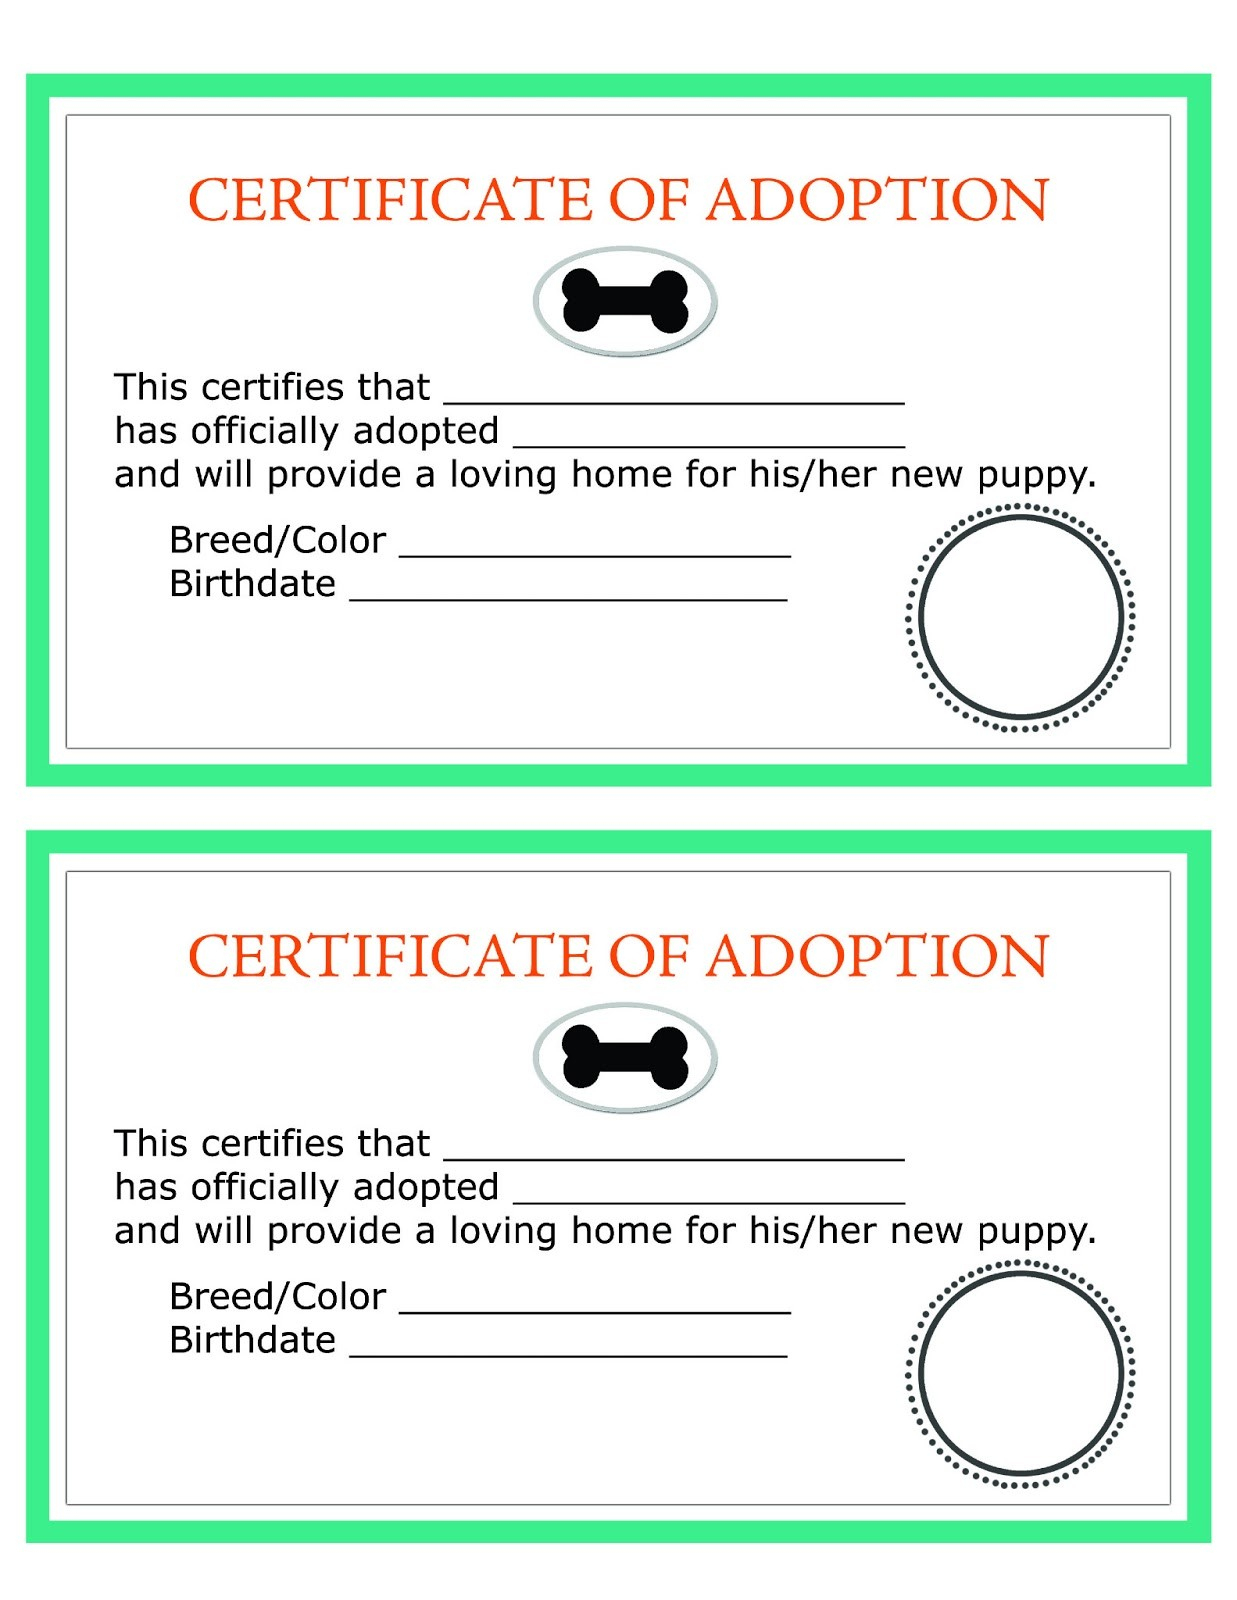 Printable Dog Birth Certificate Fresh Child Adoption Certificate - Free Printable Adoption Certificate